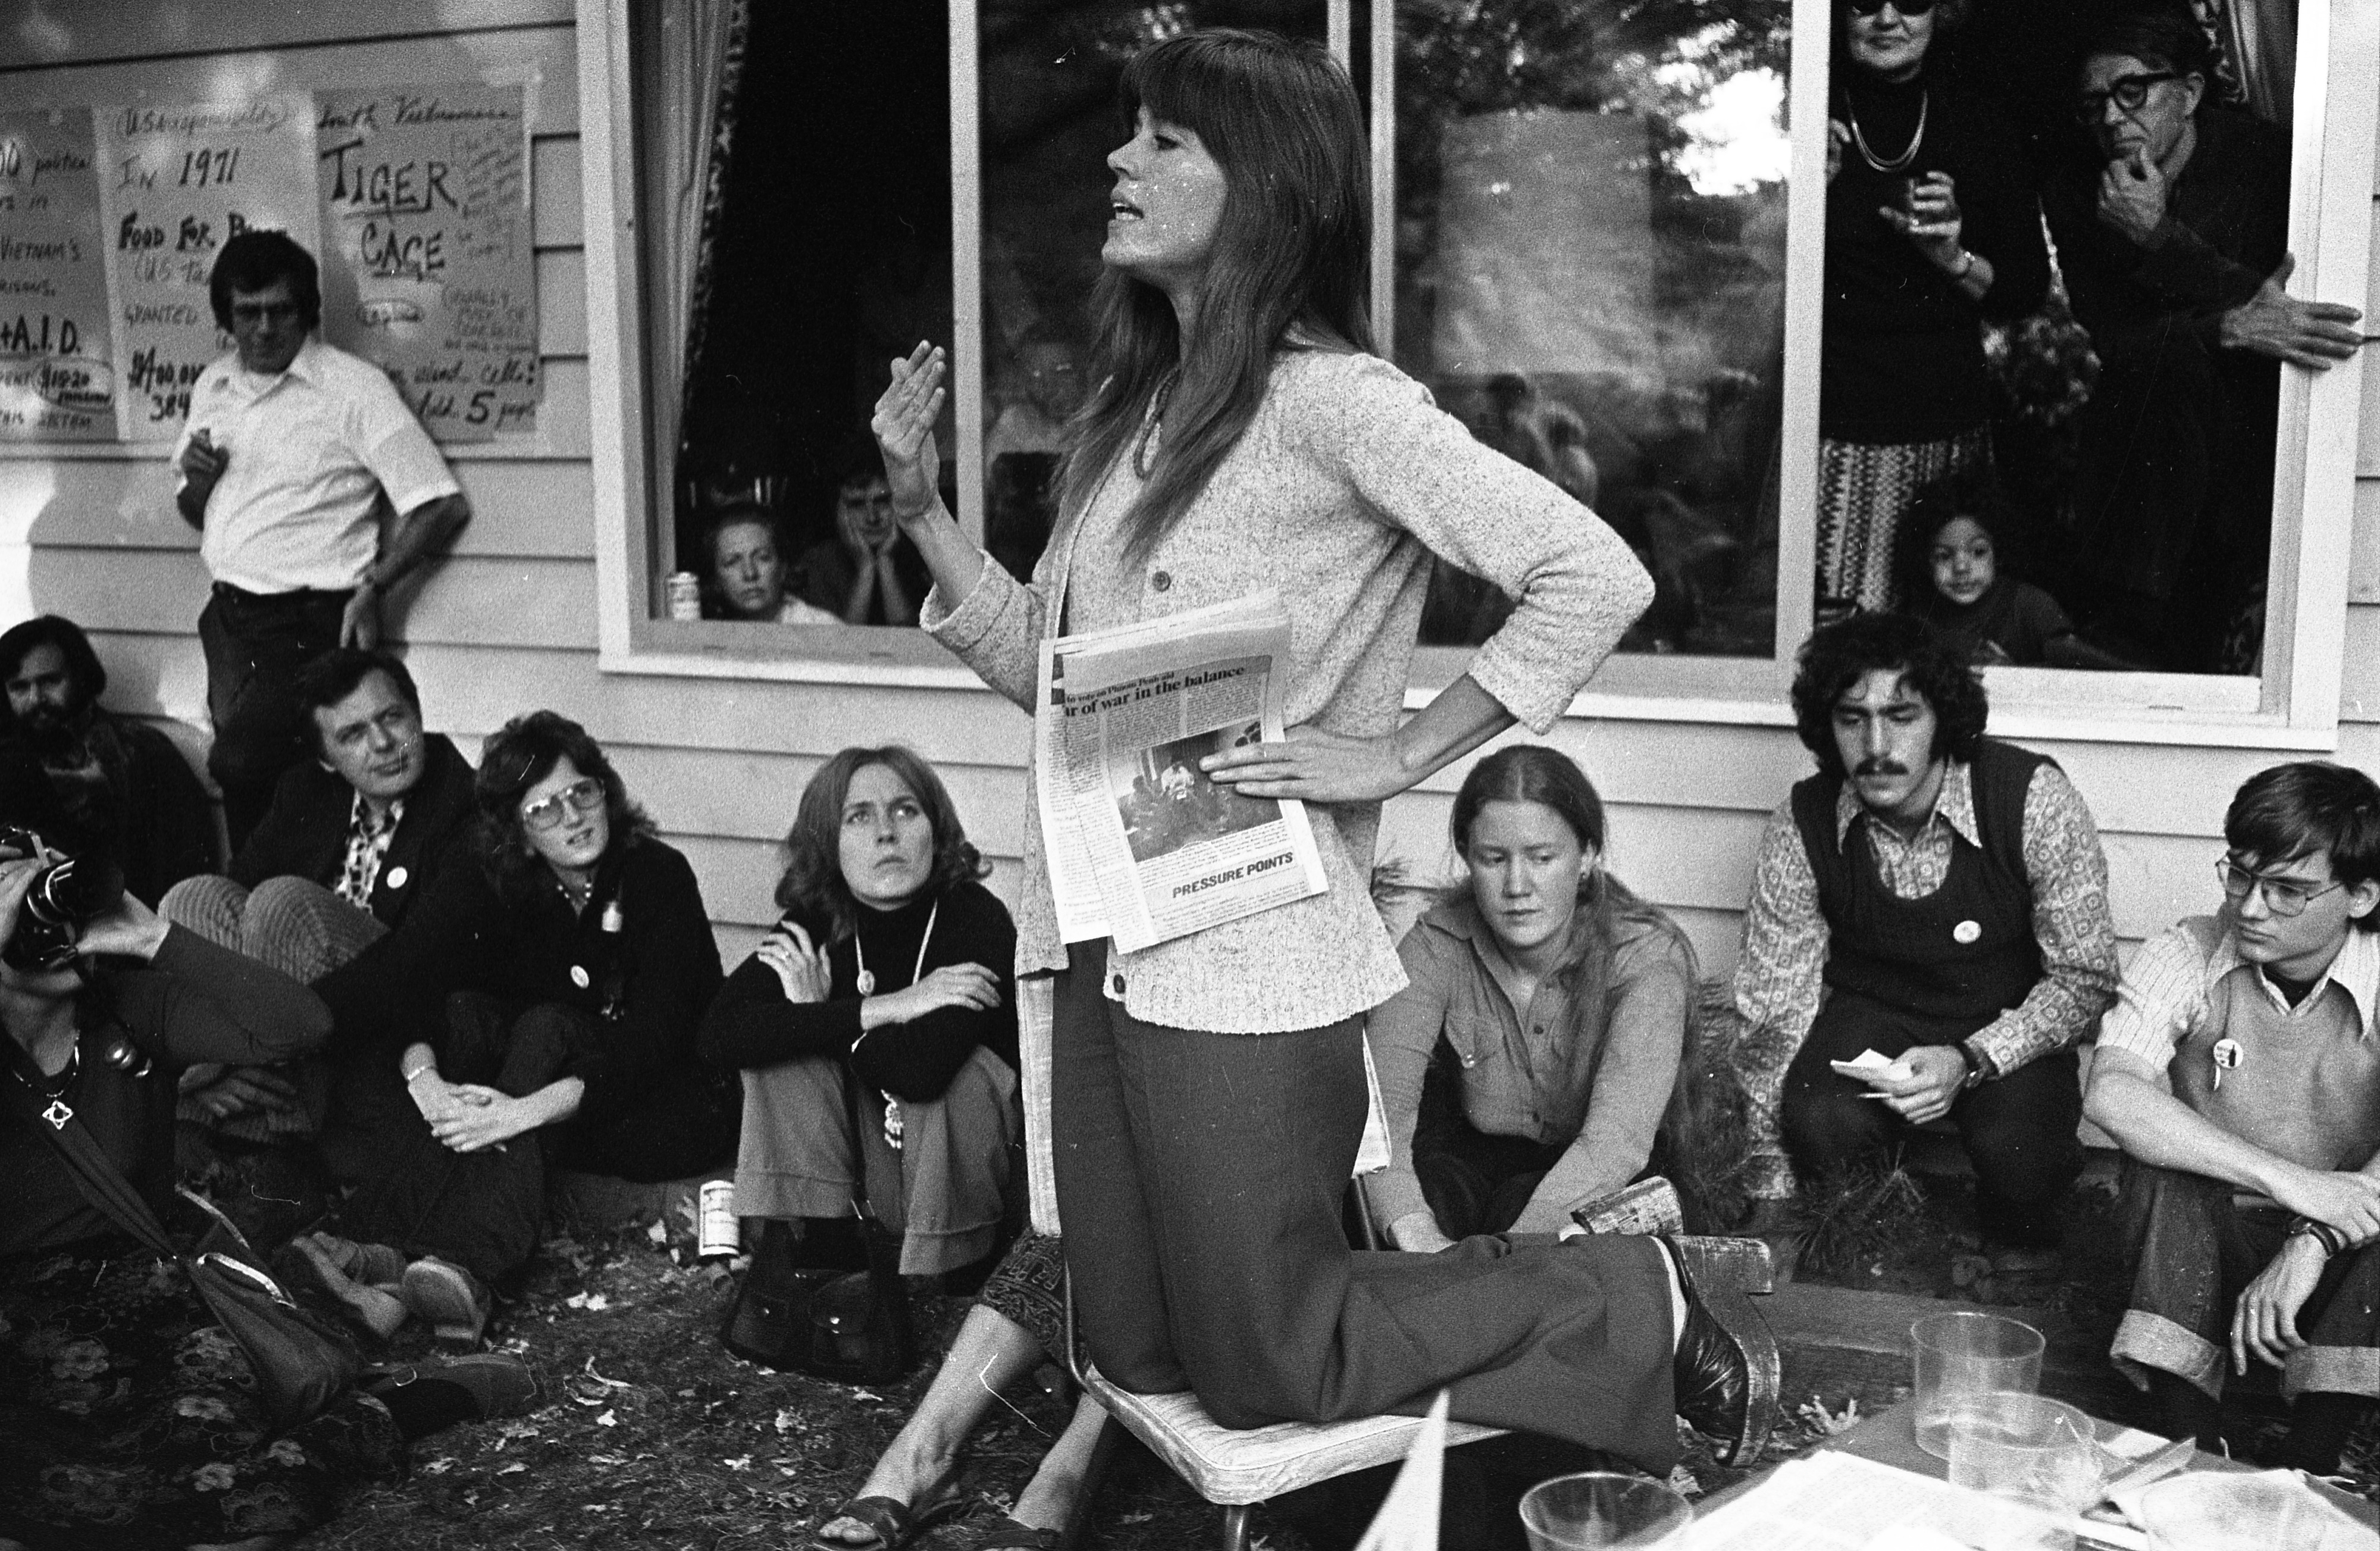 Jane Fonda Kneeling On Chair To Address Crowd At Dr. Edward Pierce's House For Fundraiser, October 1974 image